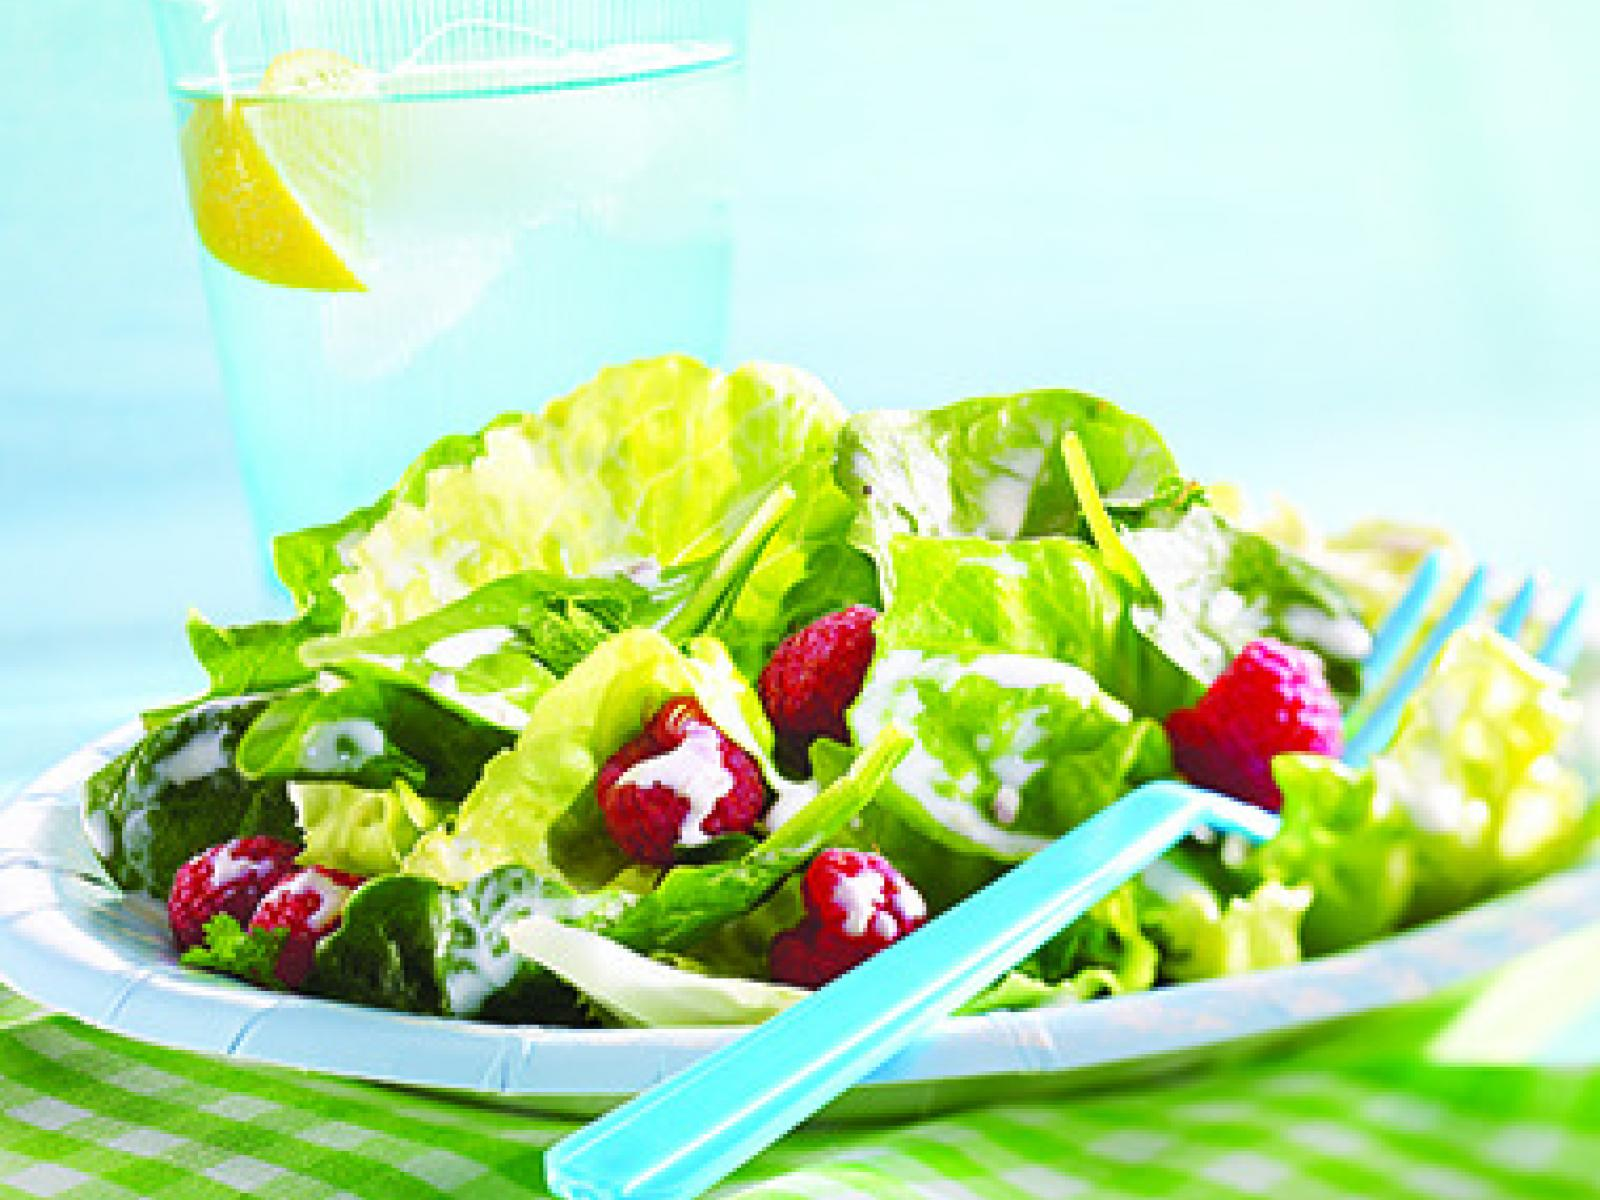 Green Salad with Raspberries and Cream